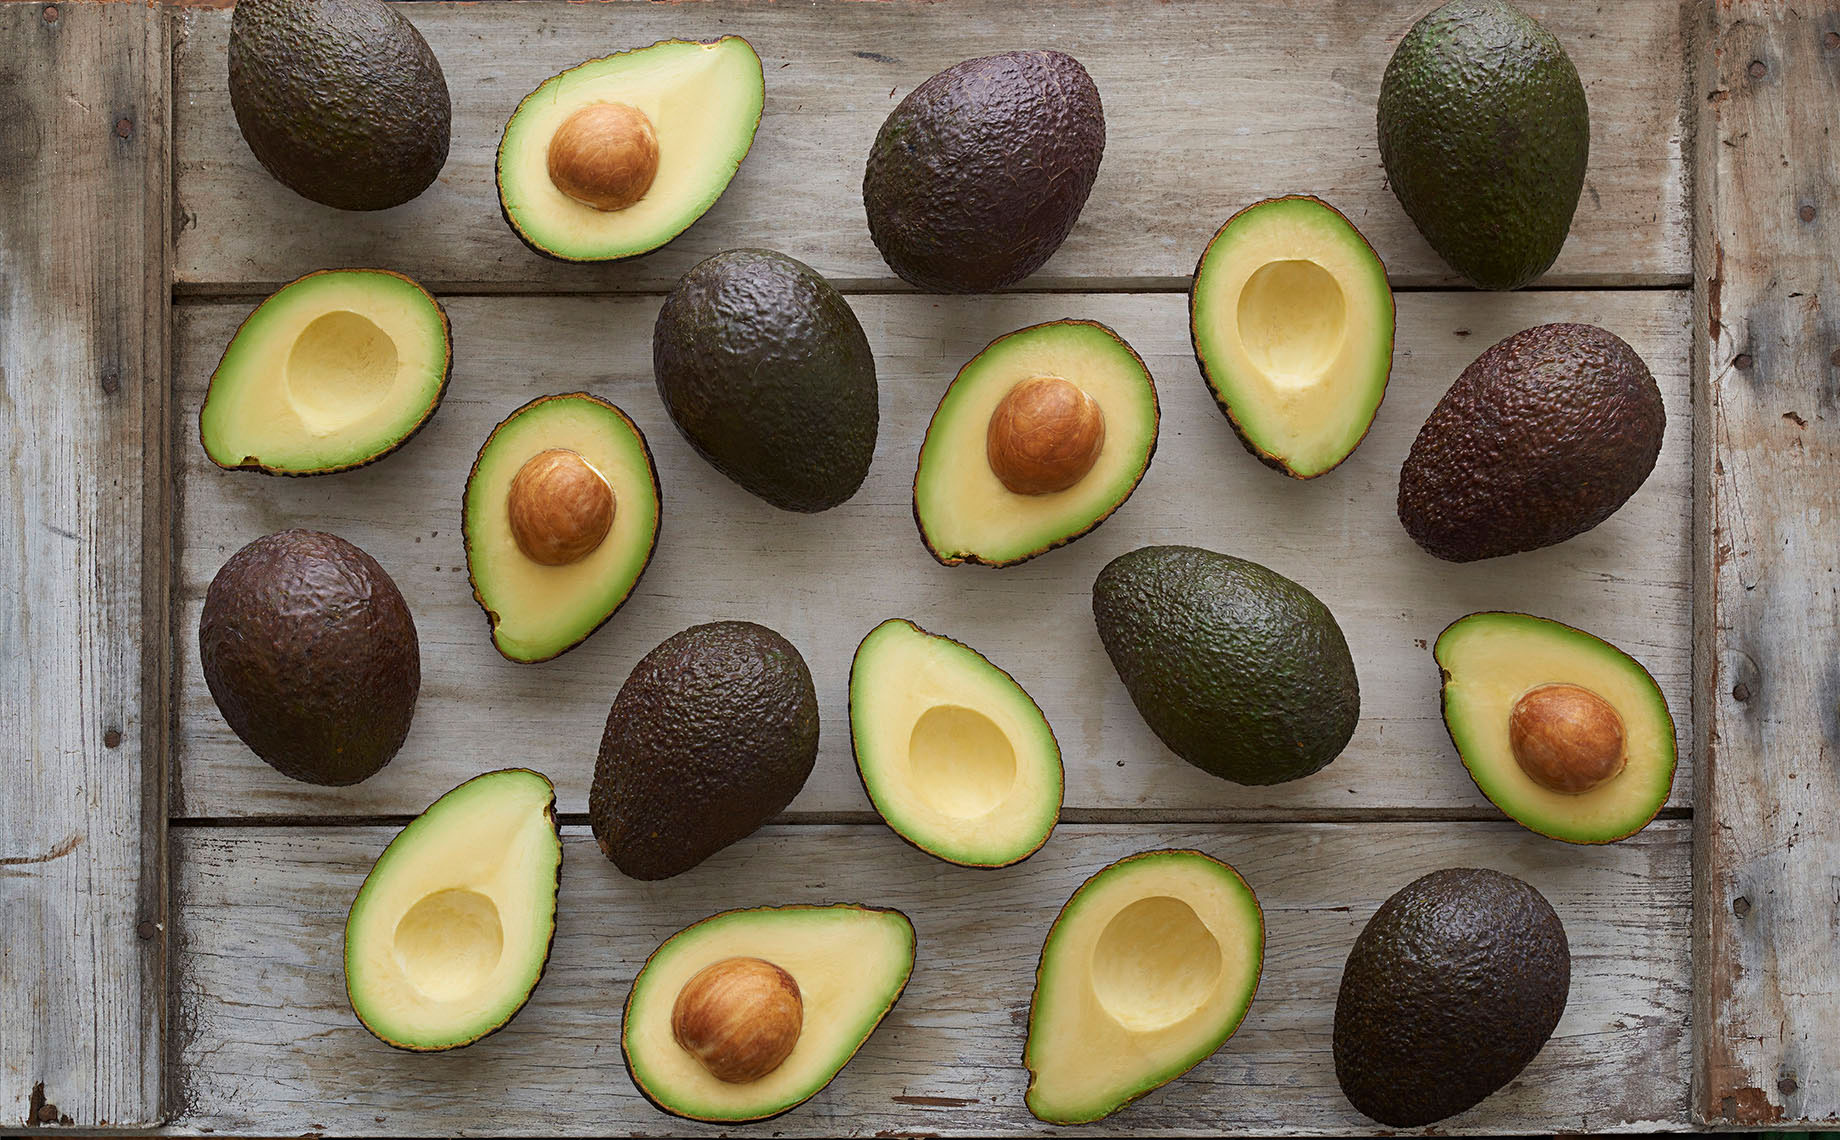 Whole-and-cut-in-half-California-grown-hass-avocados-white-barn-wood-by-Joe-Atlas-food-photography.